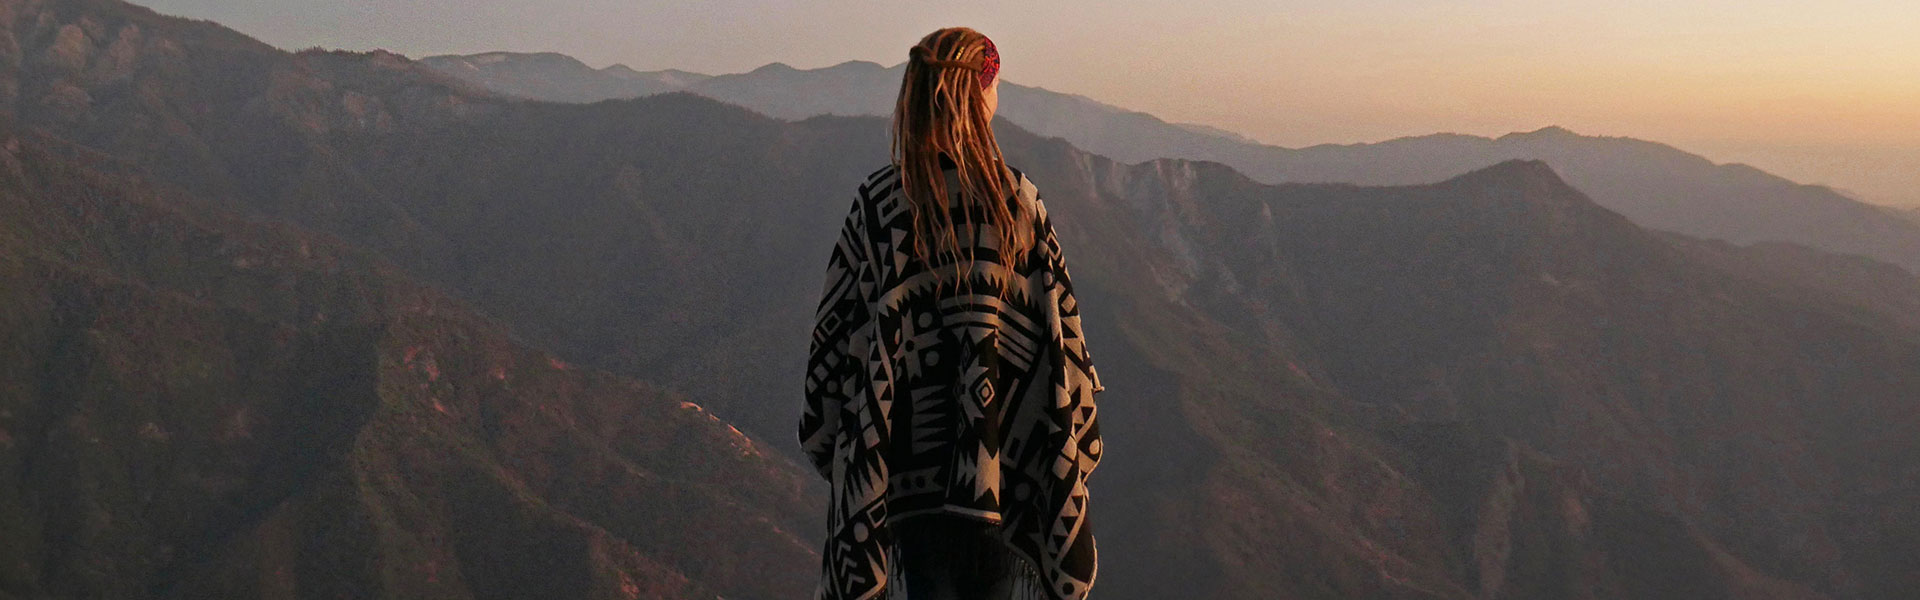 Rasta girl watching sunset from Moro Rock in Sequoia National Park